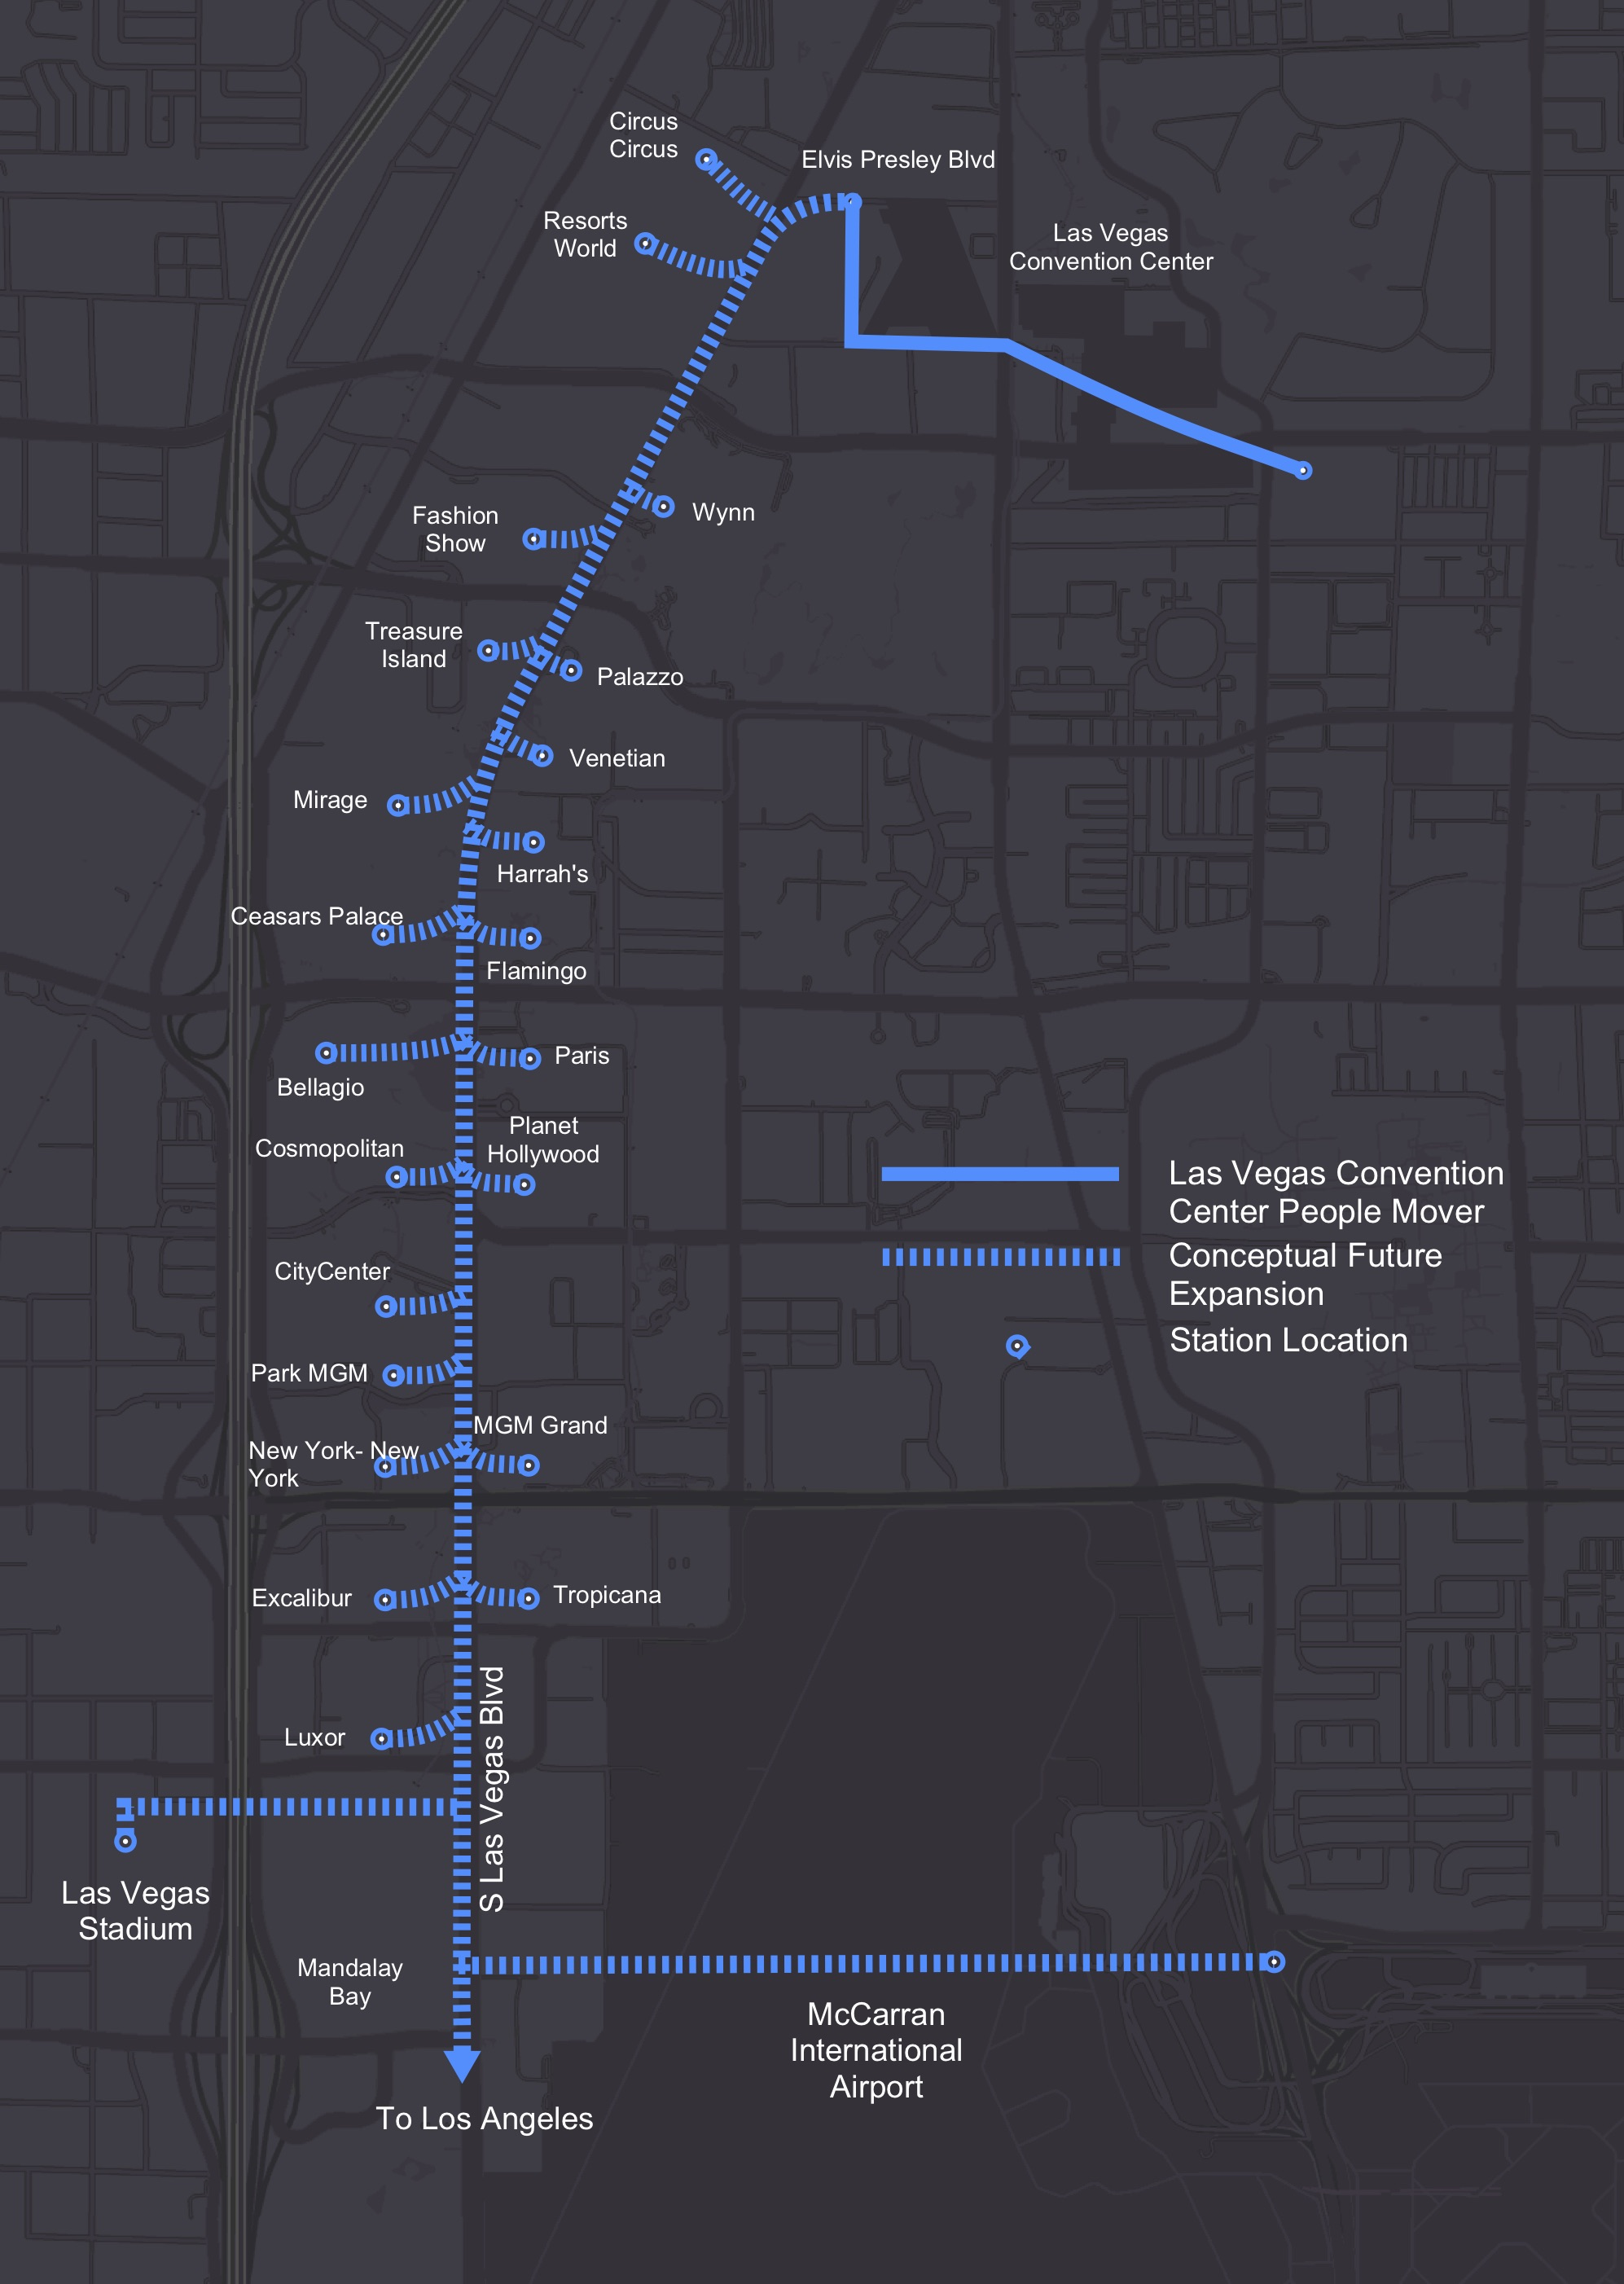 Las Vegas wants The Boring Company to construct tunnel under